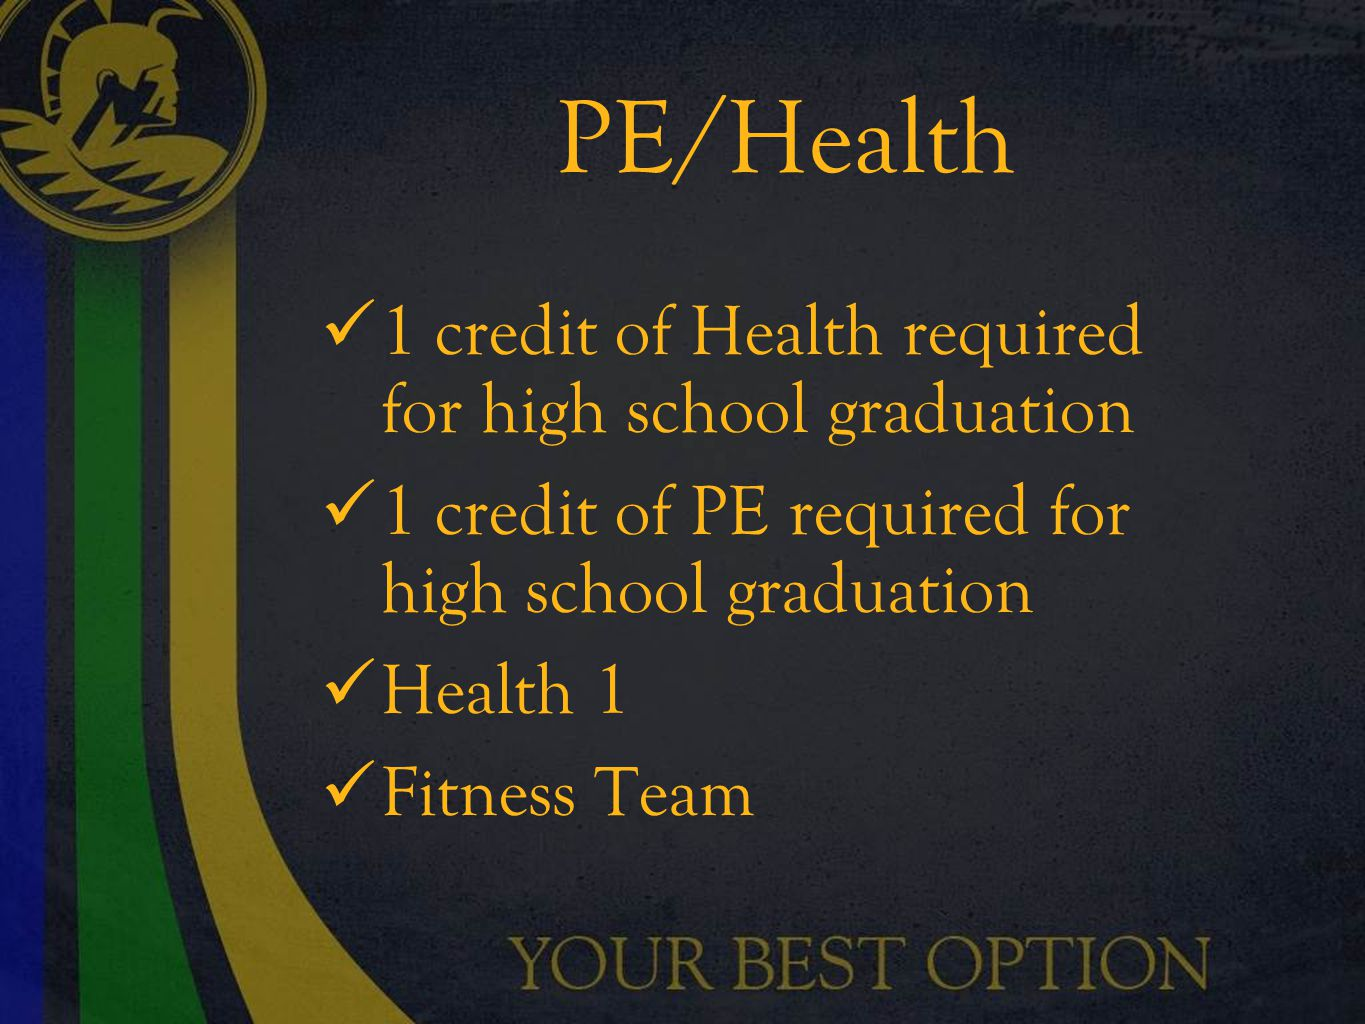 PE/Health 1 credit of Health required for high school graduation 1 credit of PE required for high school graduation Health 1 Fitness Team